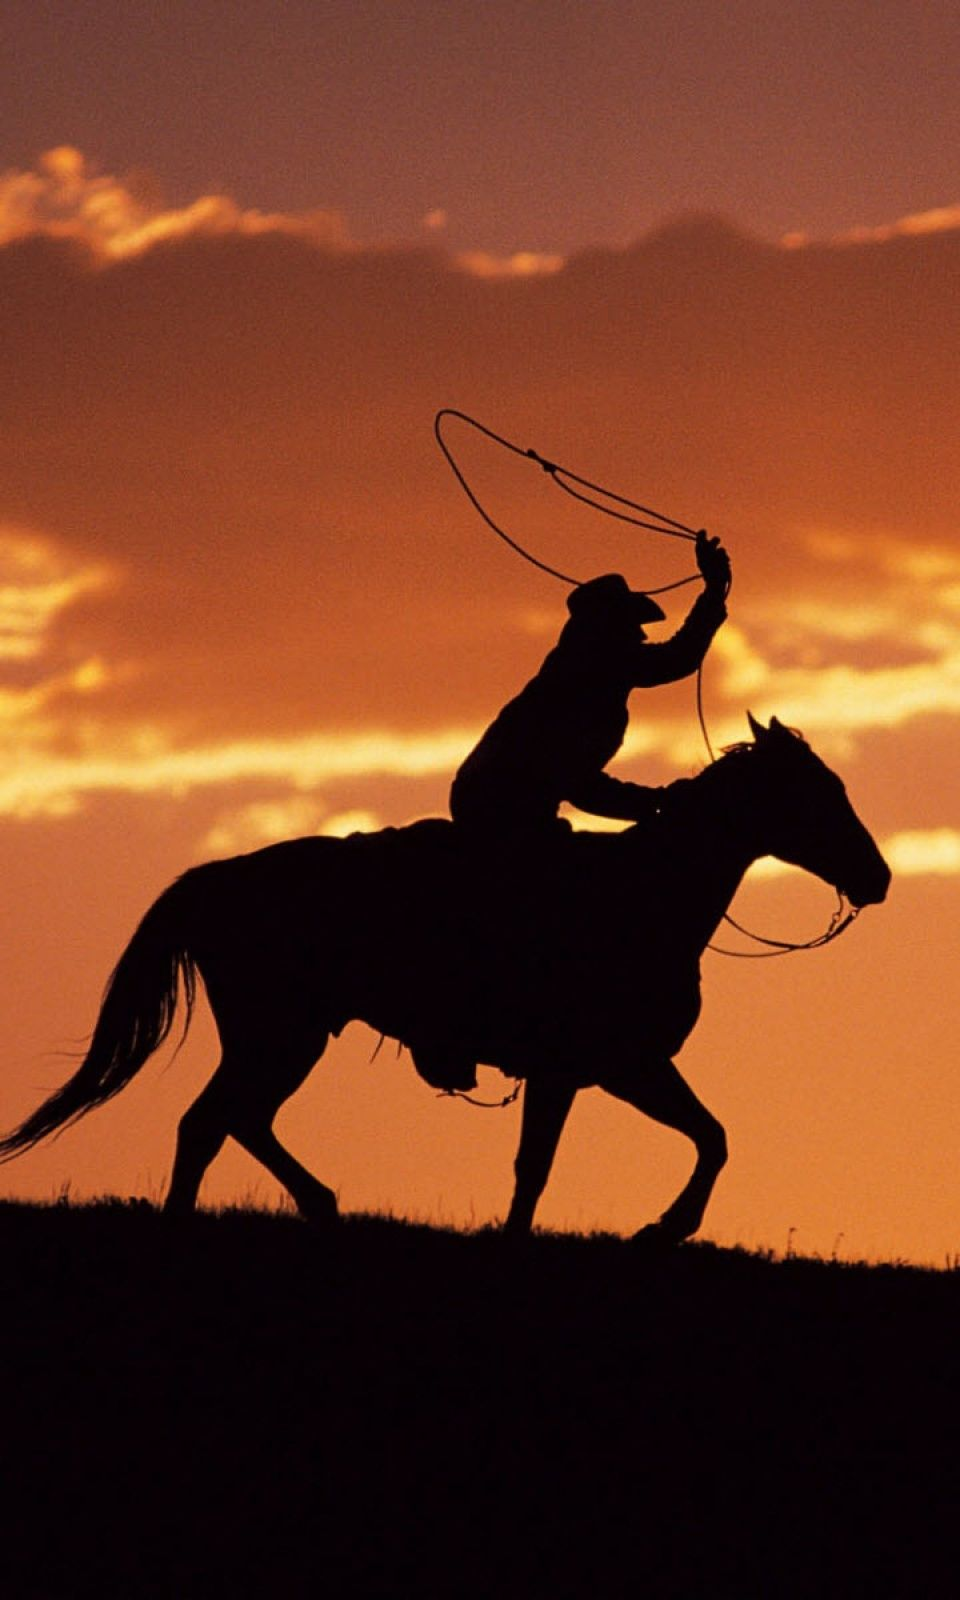 960x1600 Western Cowboy At Sunset Mobile Wallpaper - Mobiles Wall